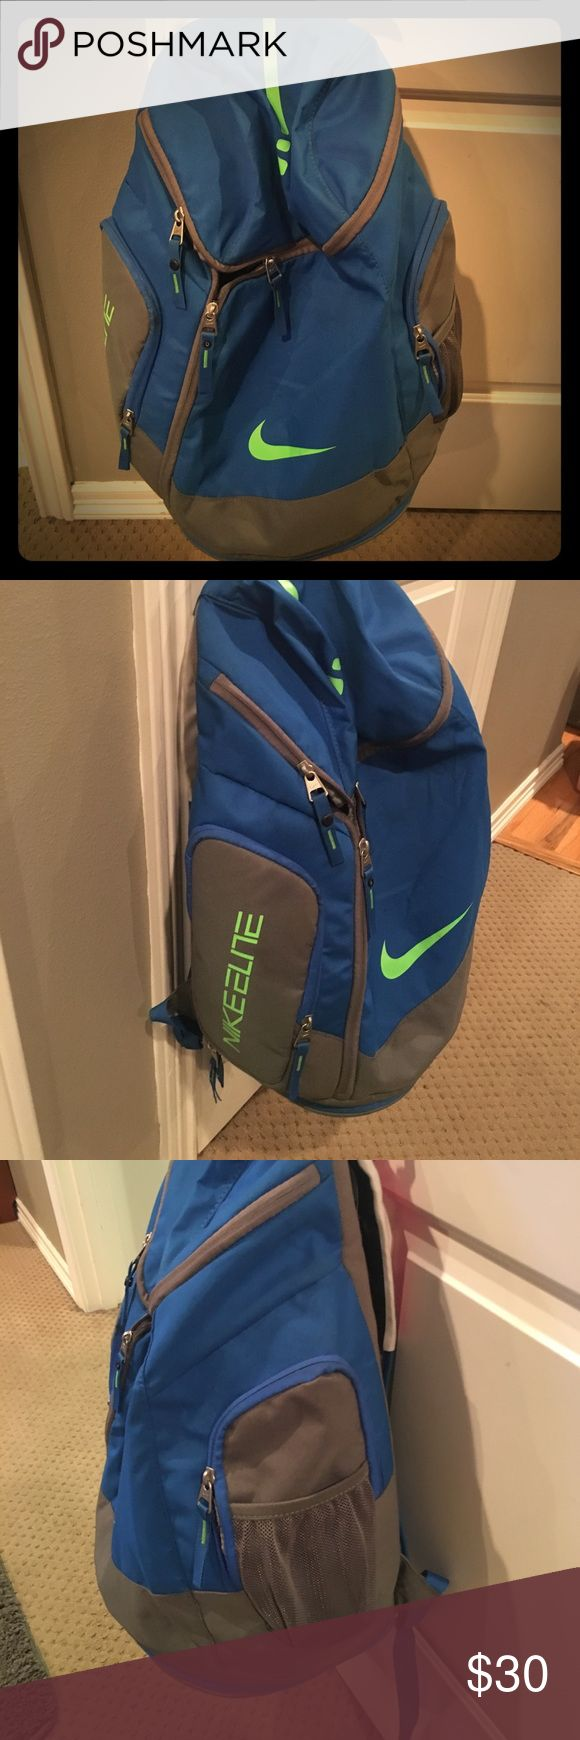 Nike Elite basketball backpack Very lightly used basketball backpack. Team got a matching bag so this was not needed right after we bought. Basketball never stops tag and Always Reppin tag are Velcro add on's and can be taken off. Nike Accessories Bags